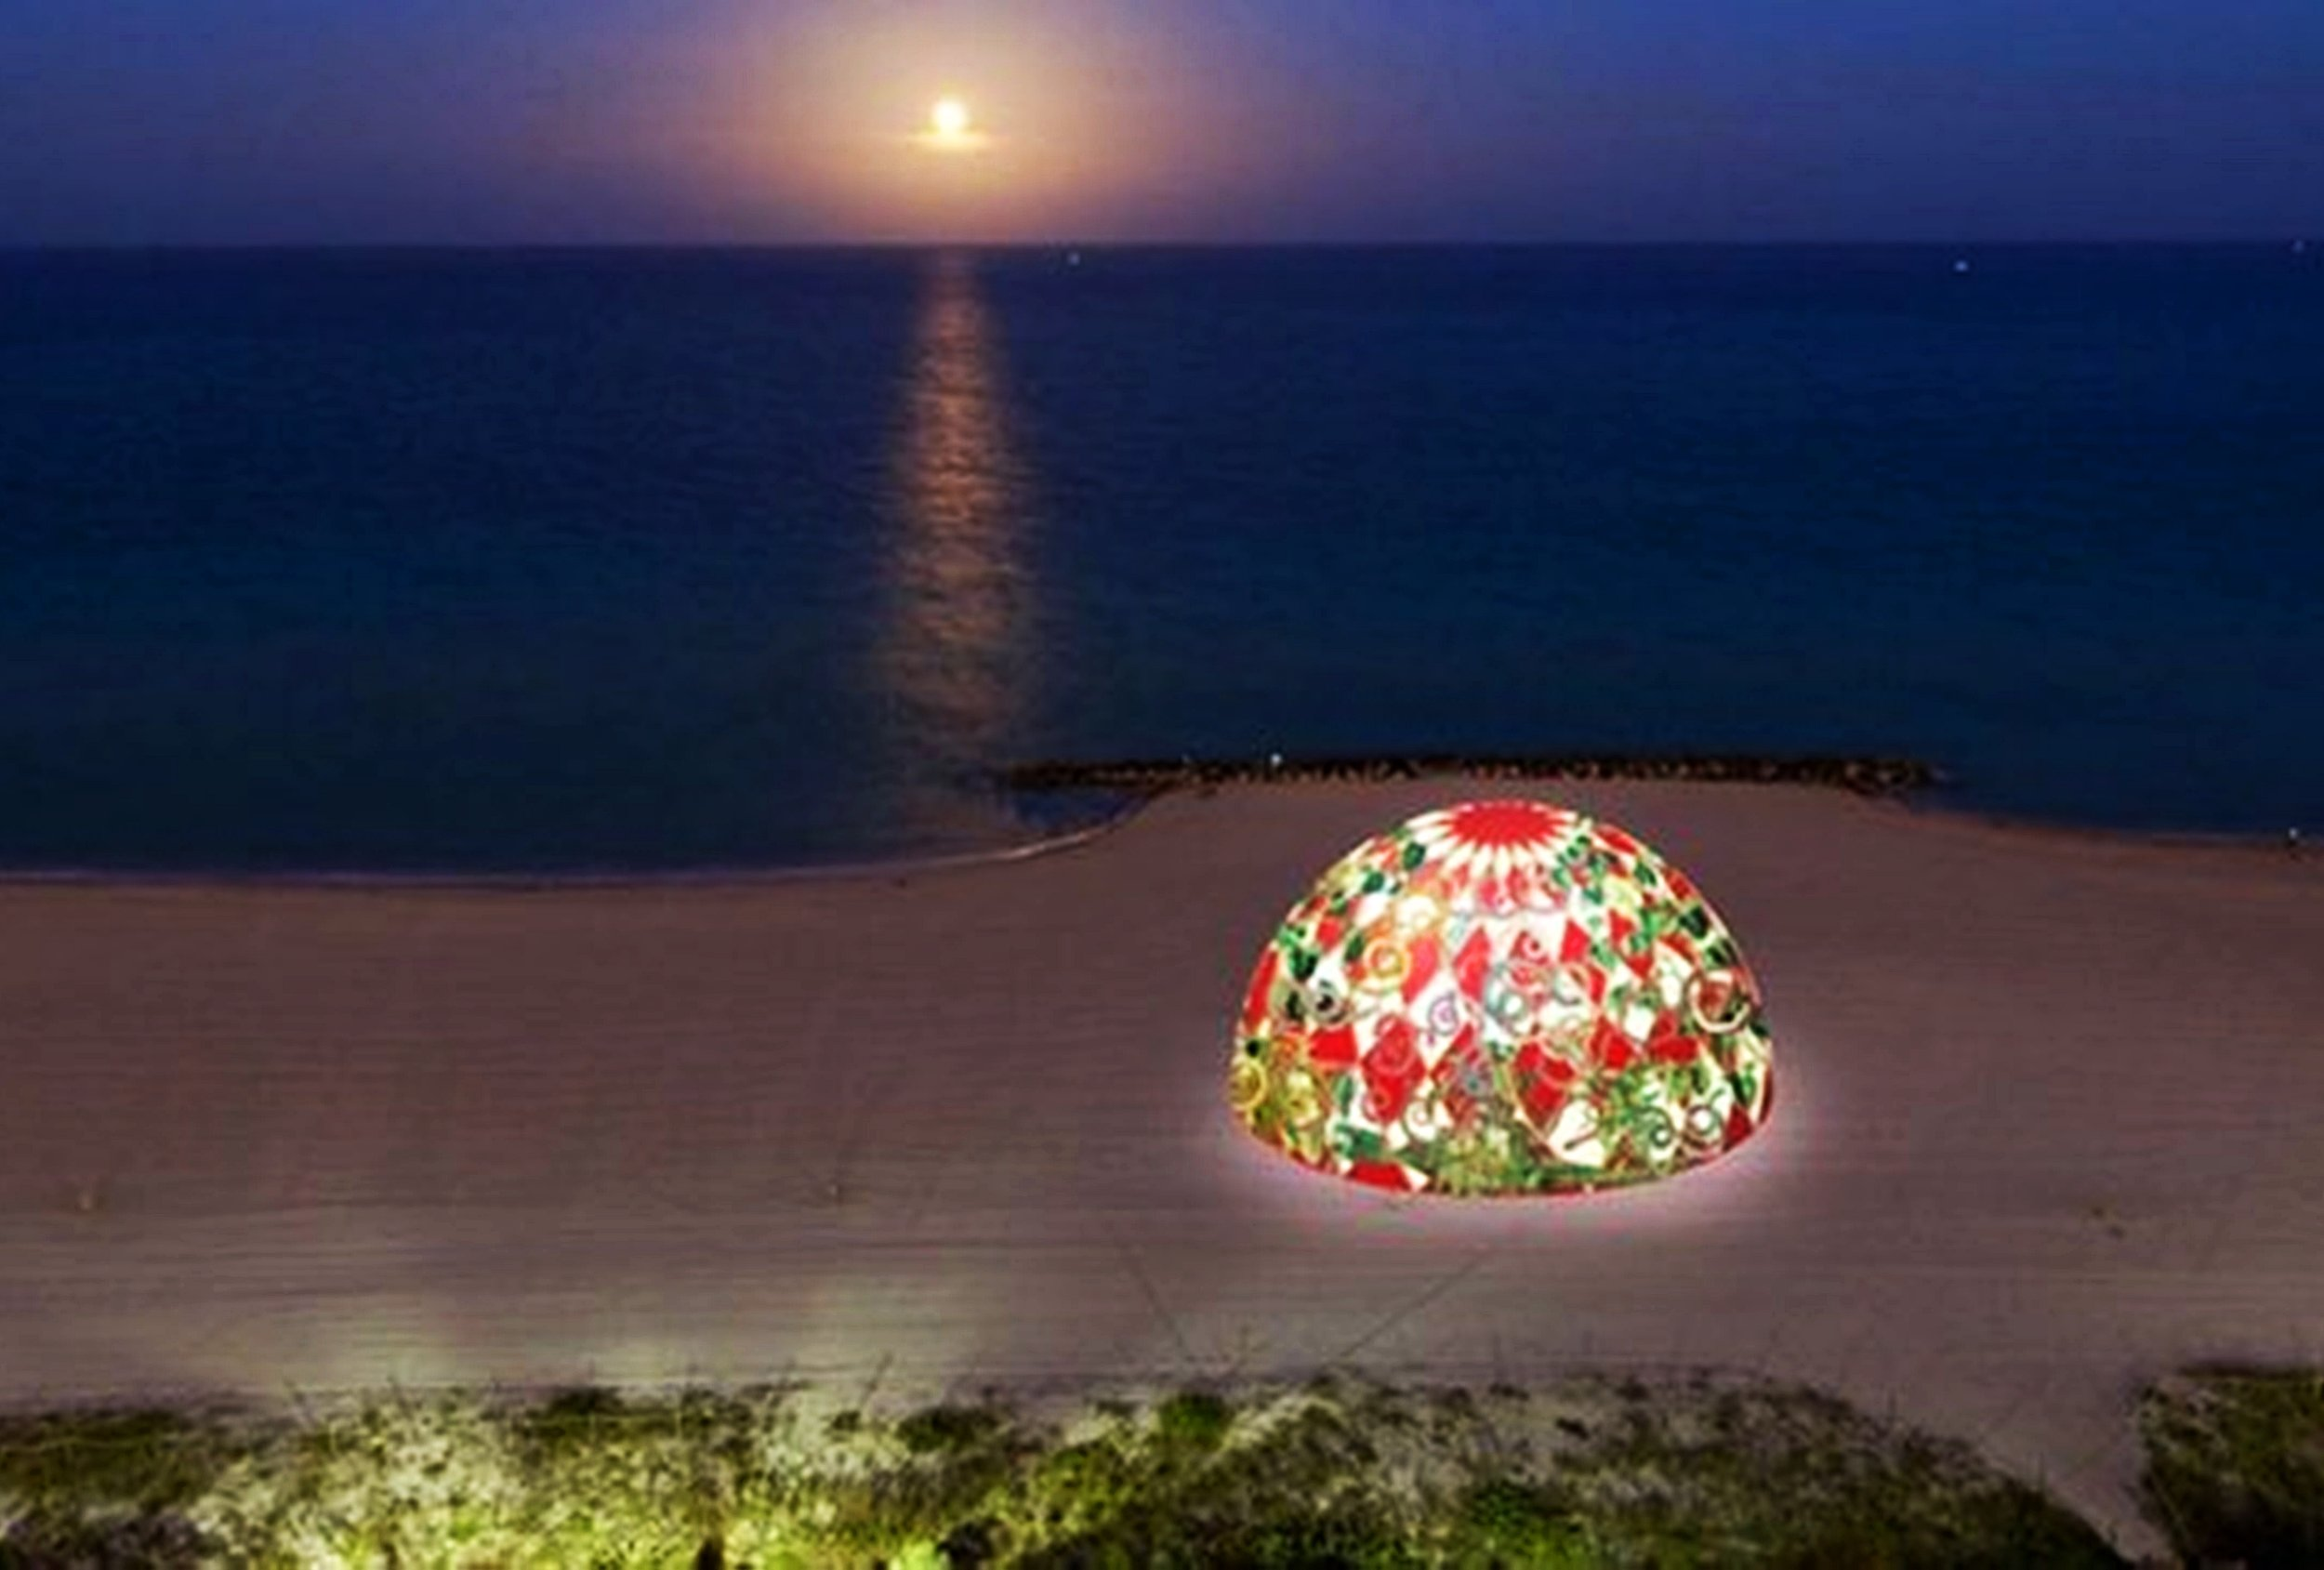 The Geodesic Dome designed by Juan Gatti for Faena